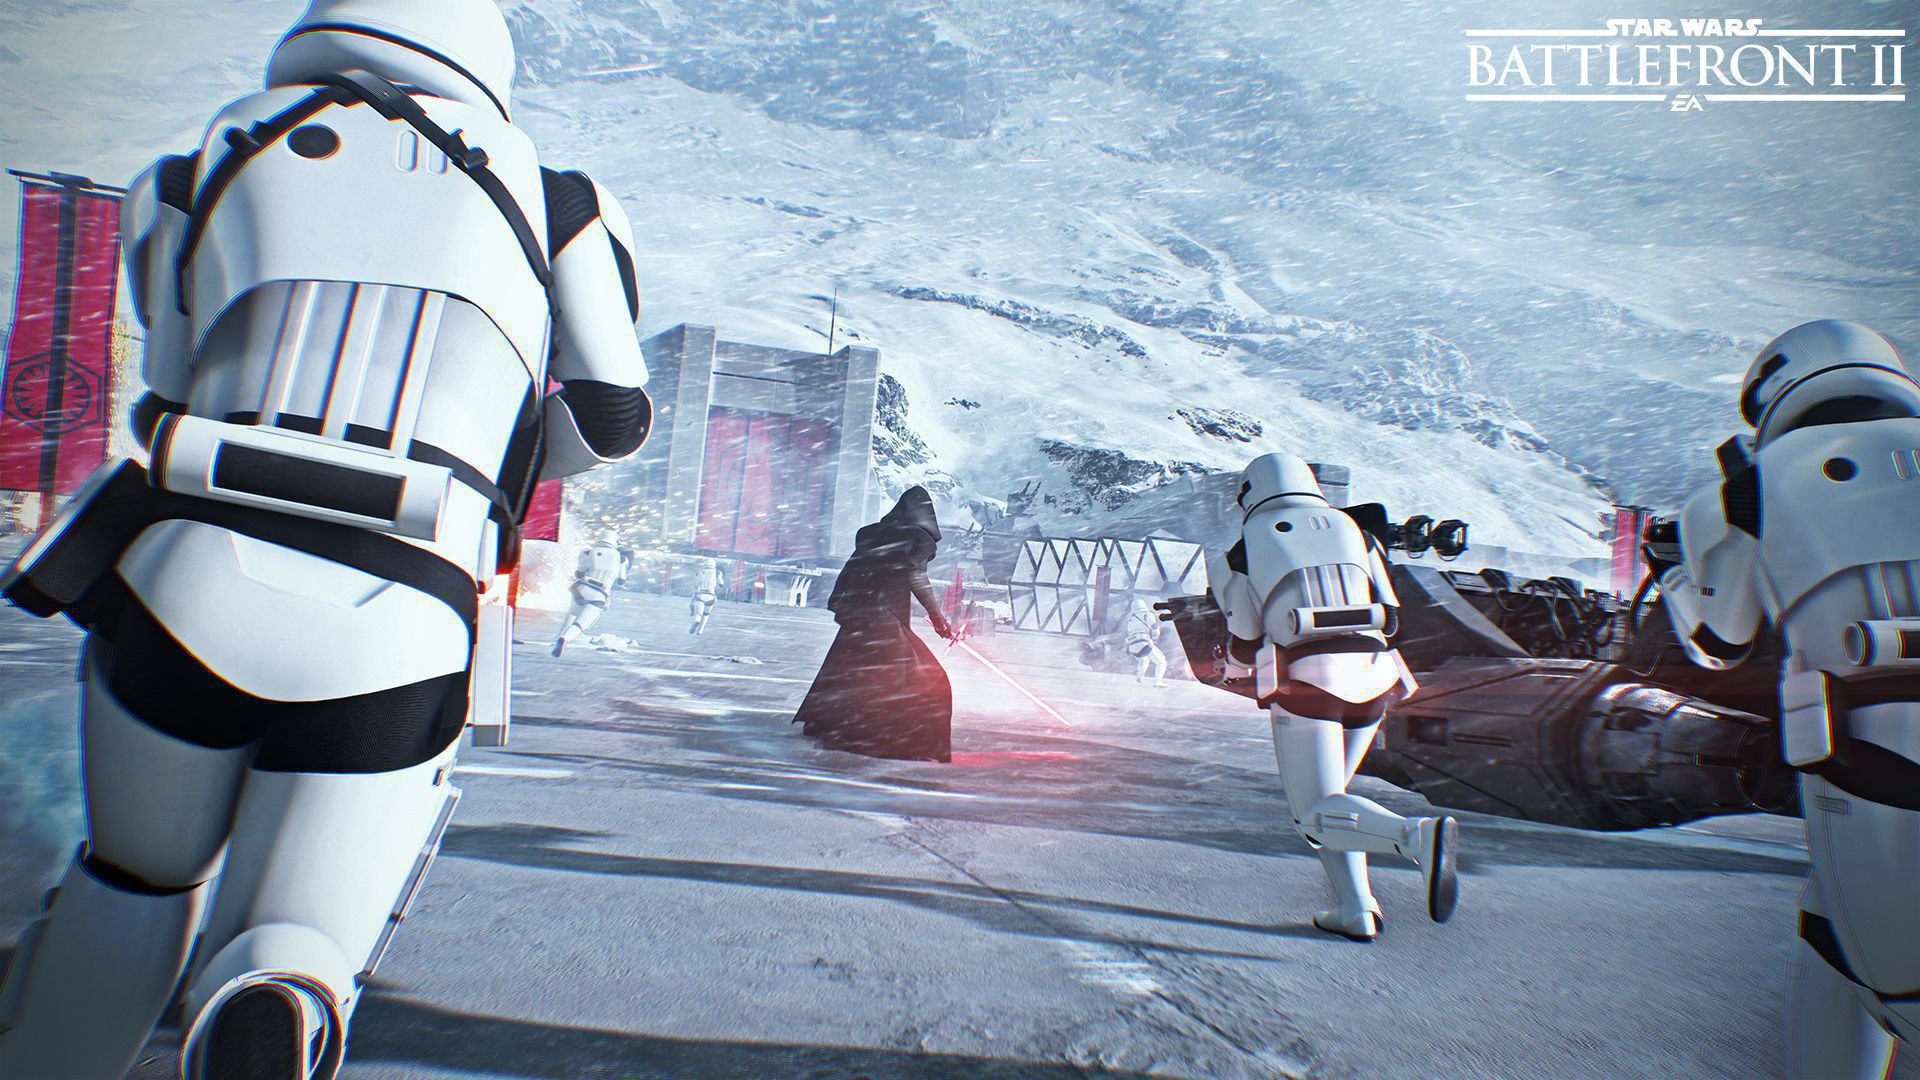 Star Wars Battlefront 2 Pictures